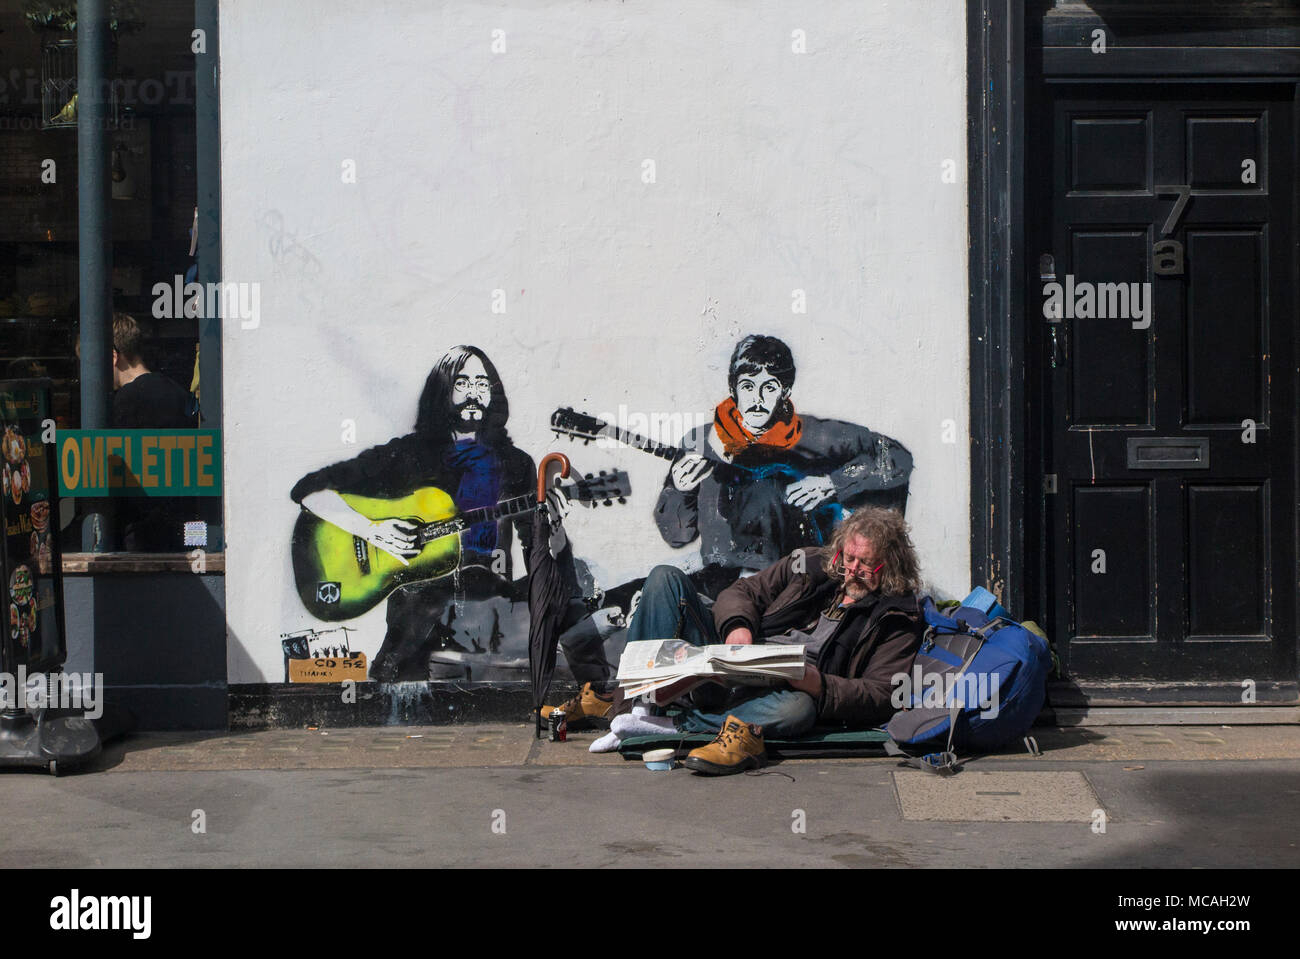 A man relaxes on the pavement in Soho in front of a picture of John Lennon and Paul McCartney - Stock Image